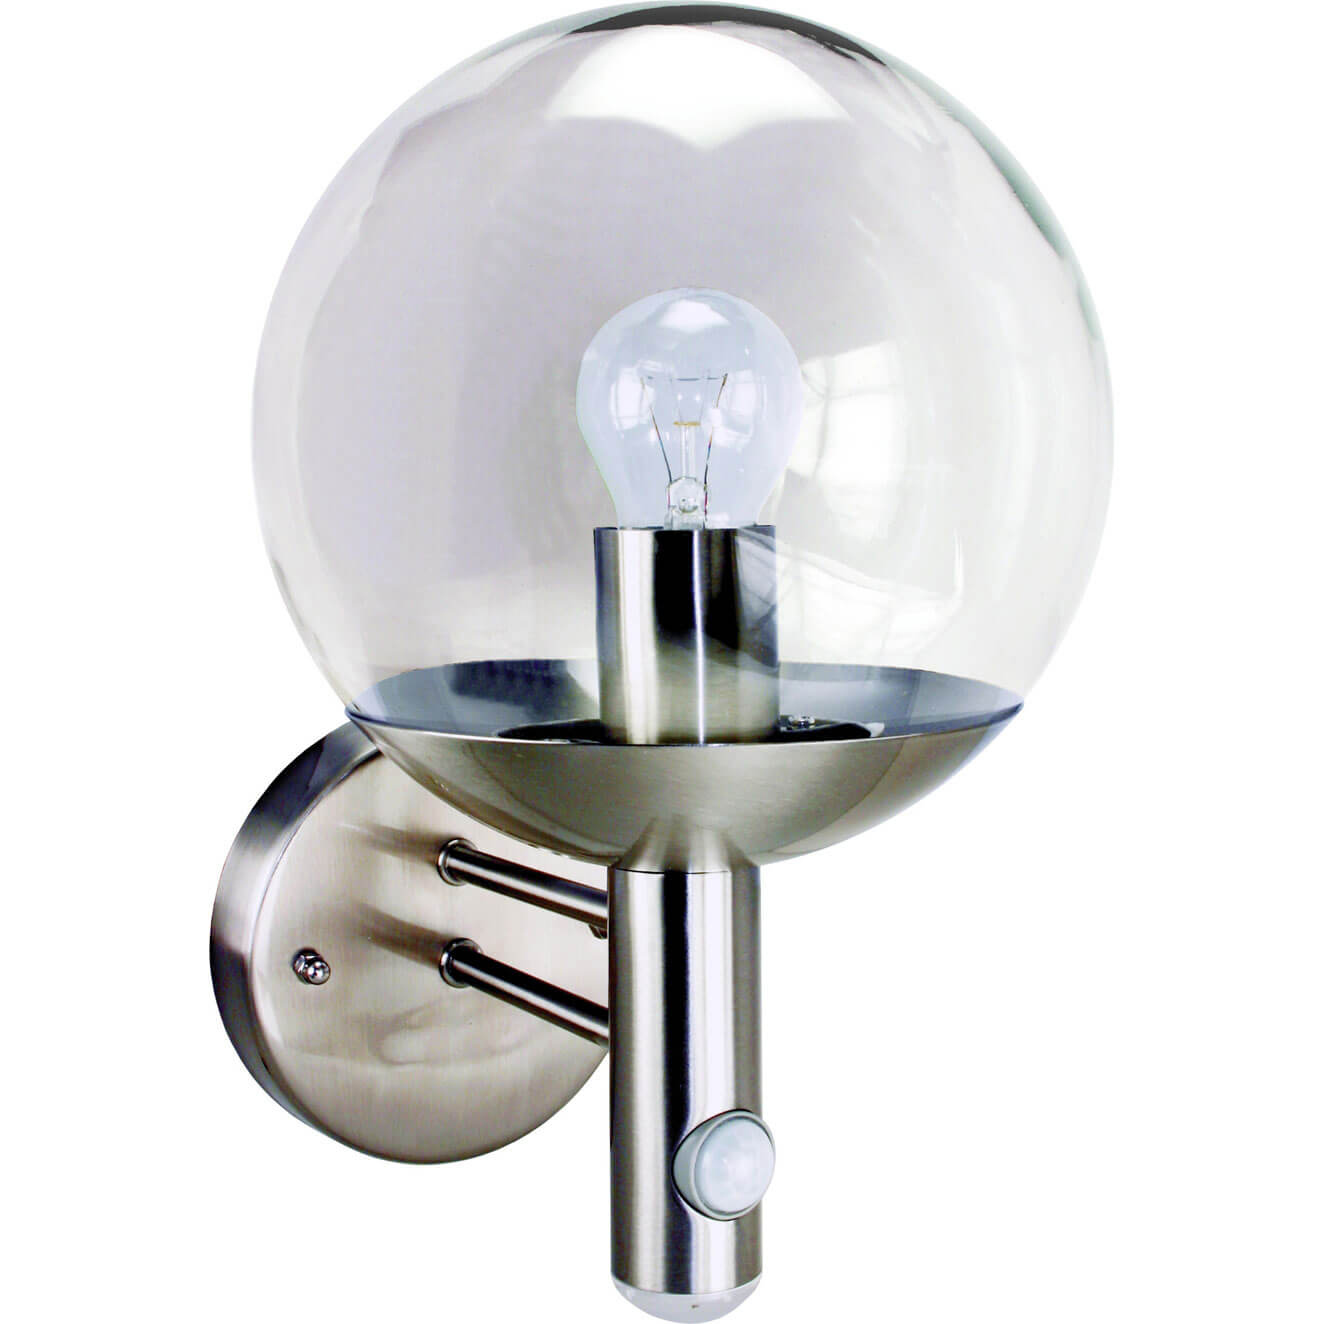 Byron RVS46LA Stainless Steel Security Light with Motion Detector 240v